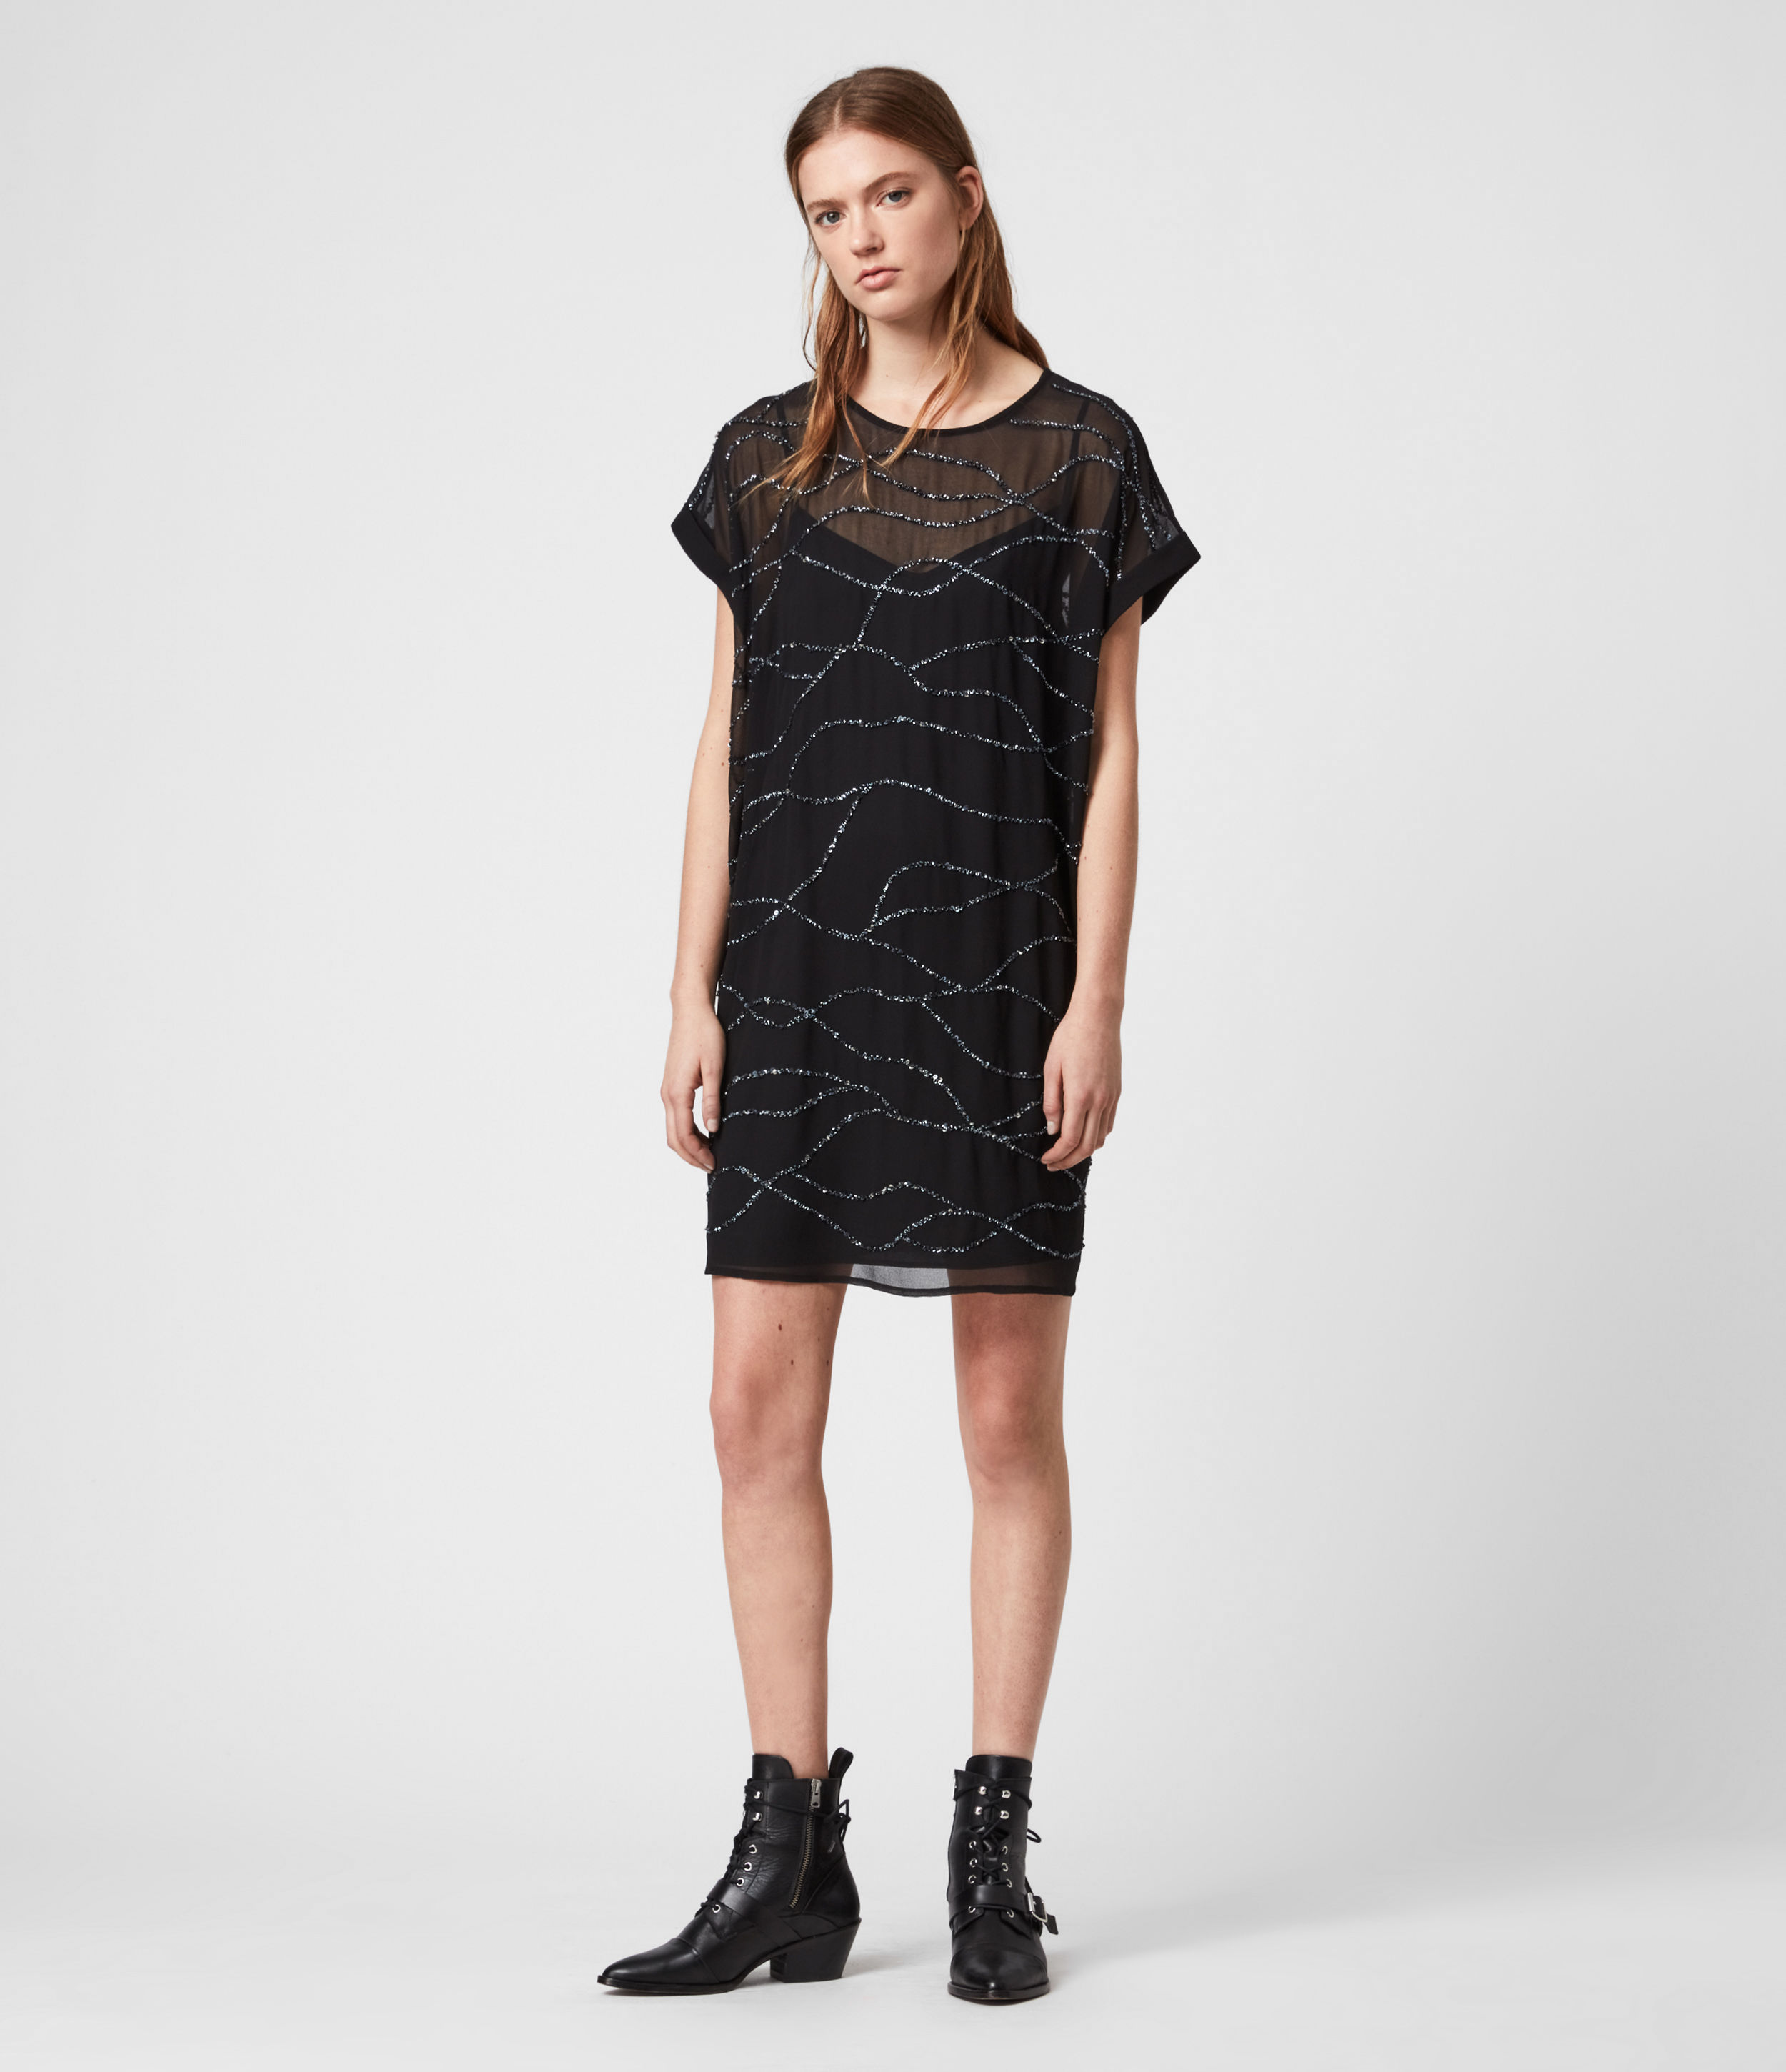 AllSaints Loran Embellished Dress